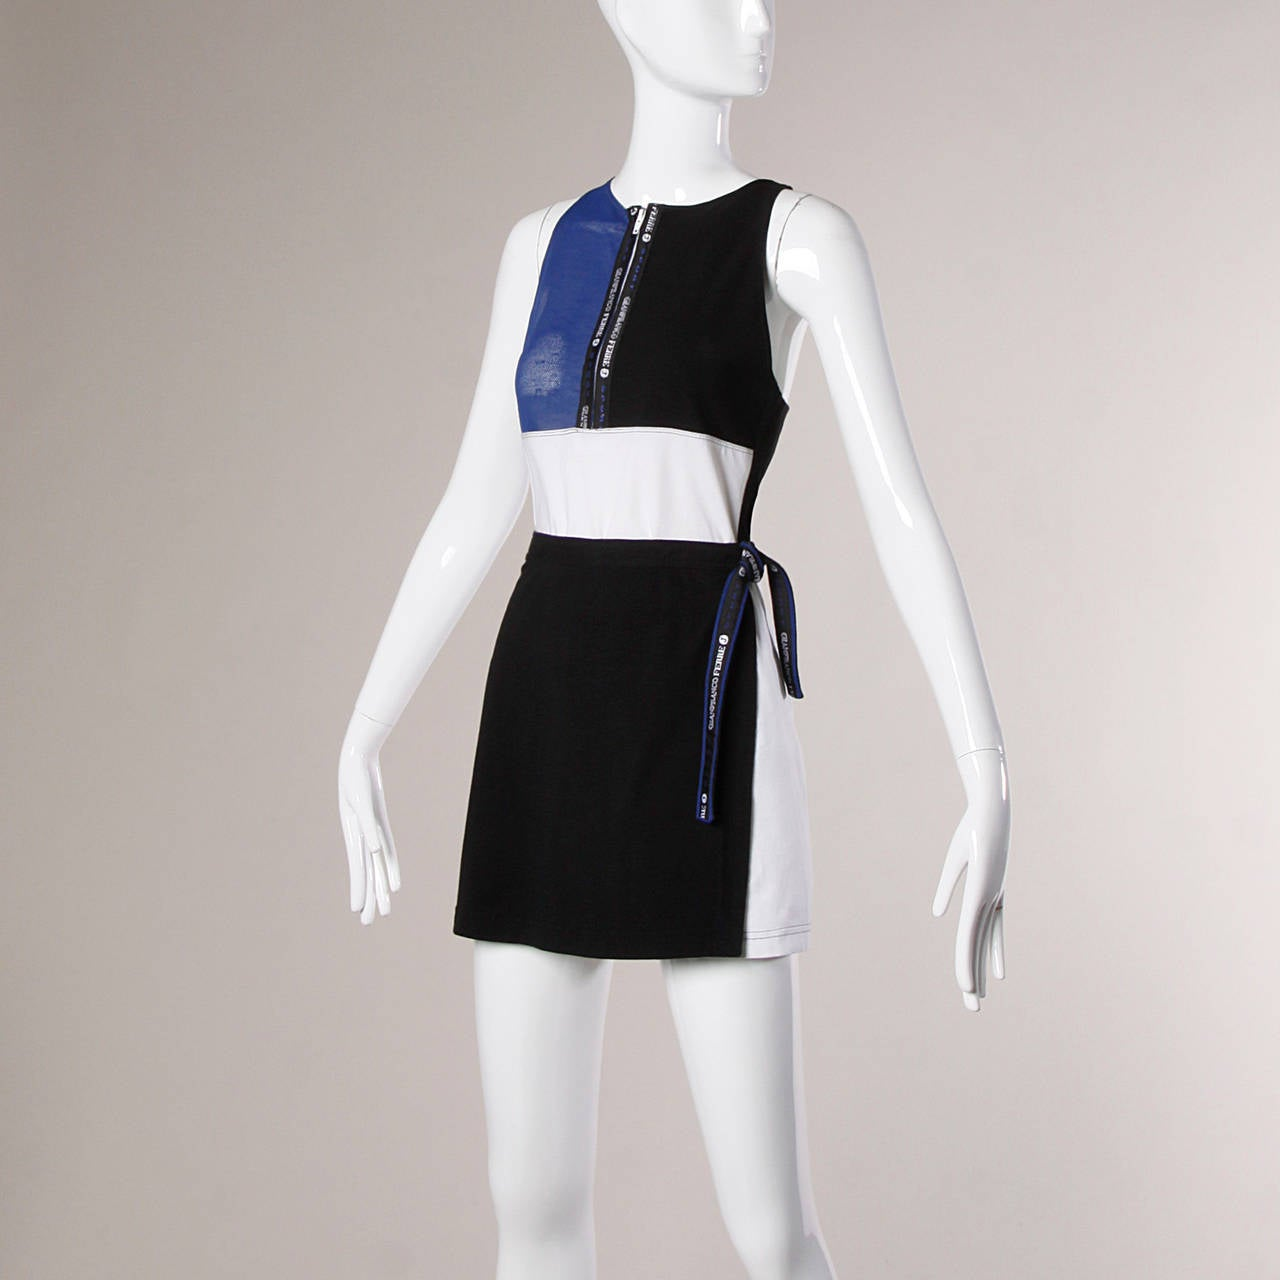 Sporty vintage 2-piece top and skirt ensemble by Gianfranco Ferre in color blocked jersey and mesh panels.  Details:  Unlined Front Zip Closure On Top Hook and Tie Closure On Skirt Marked Size: 30/40 Color: Blue/ White/ Black Fabric: Feels